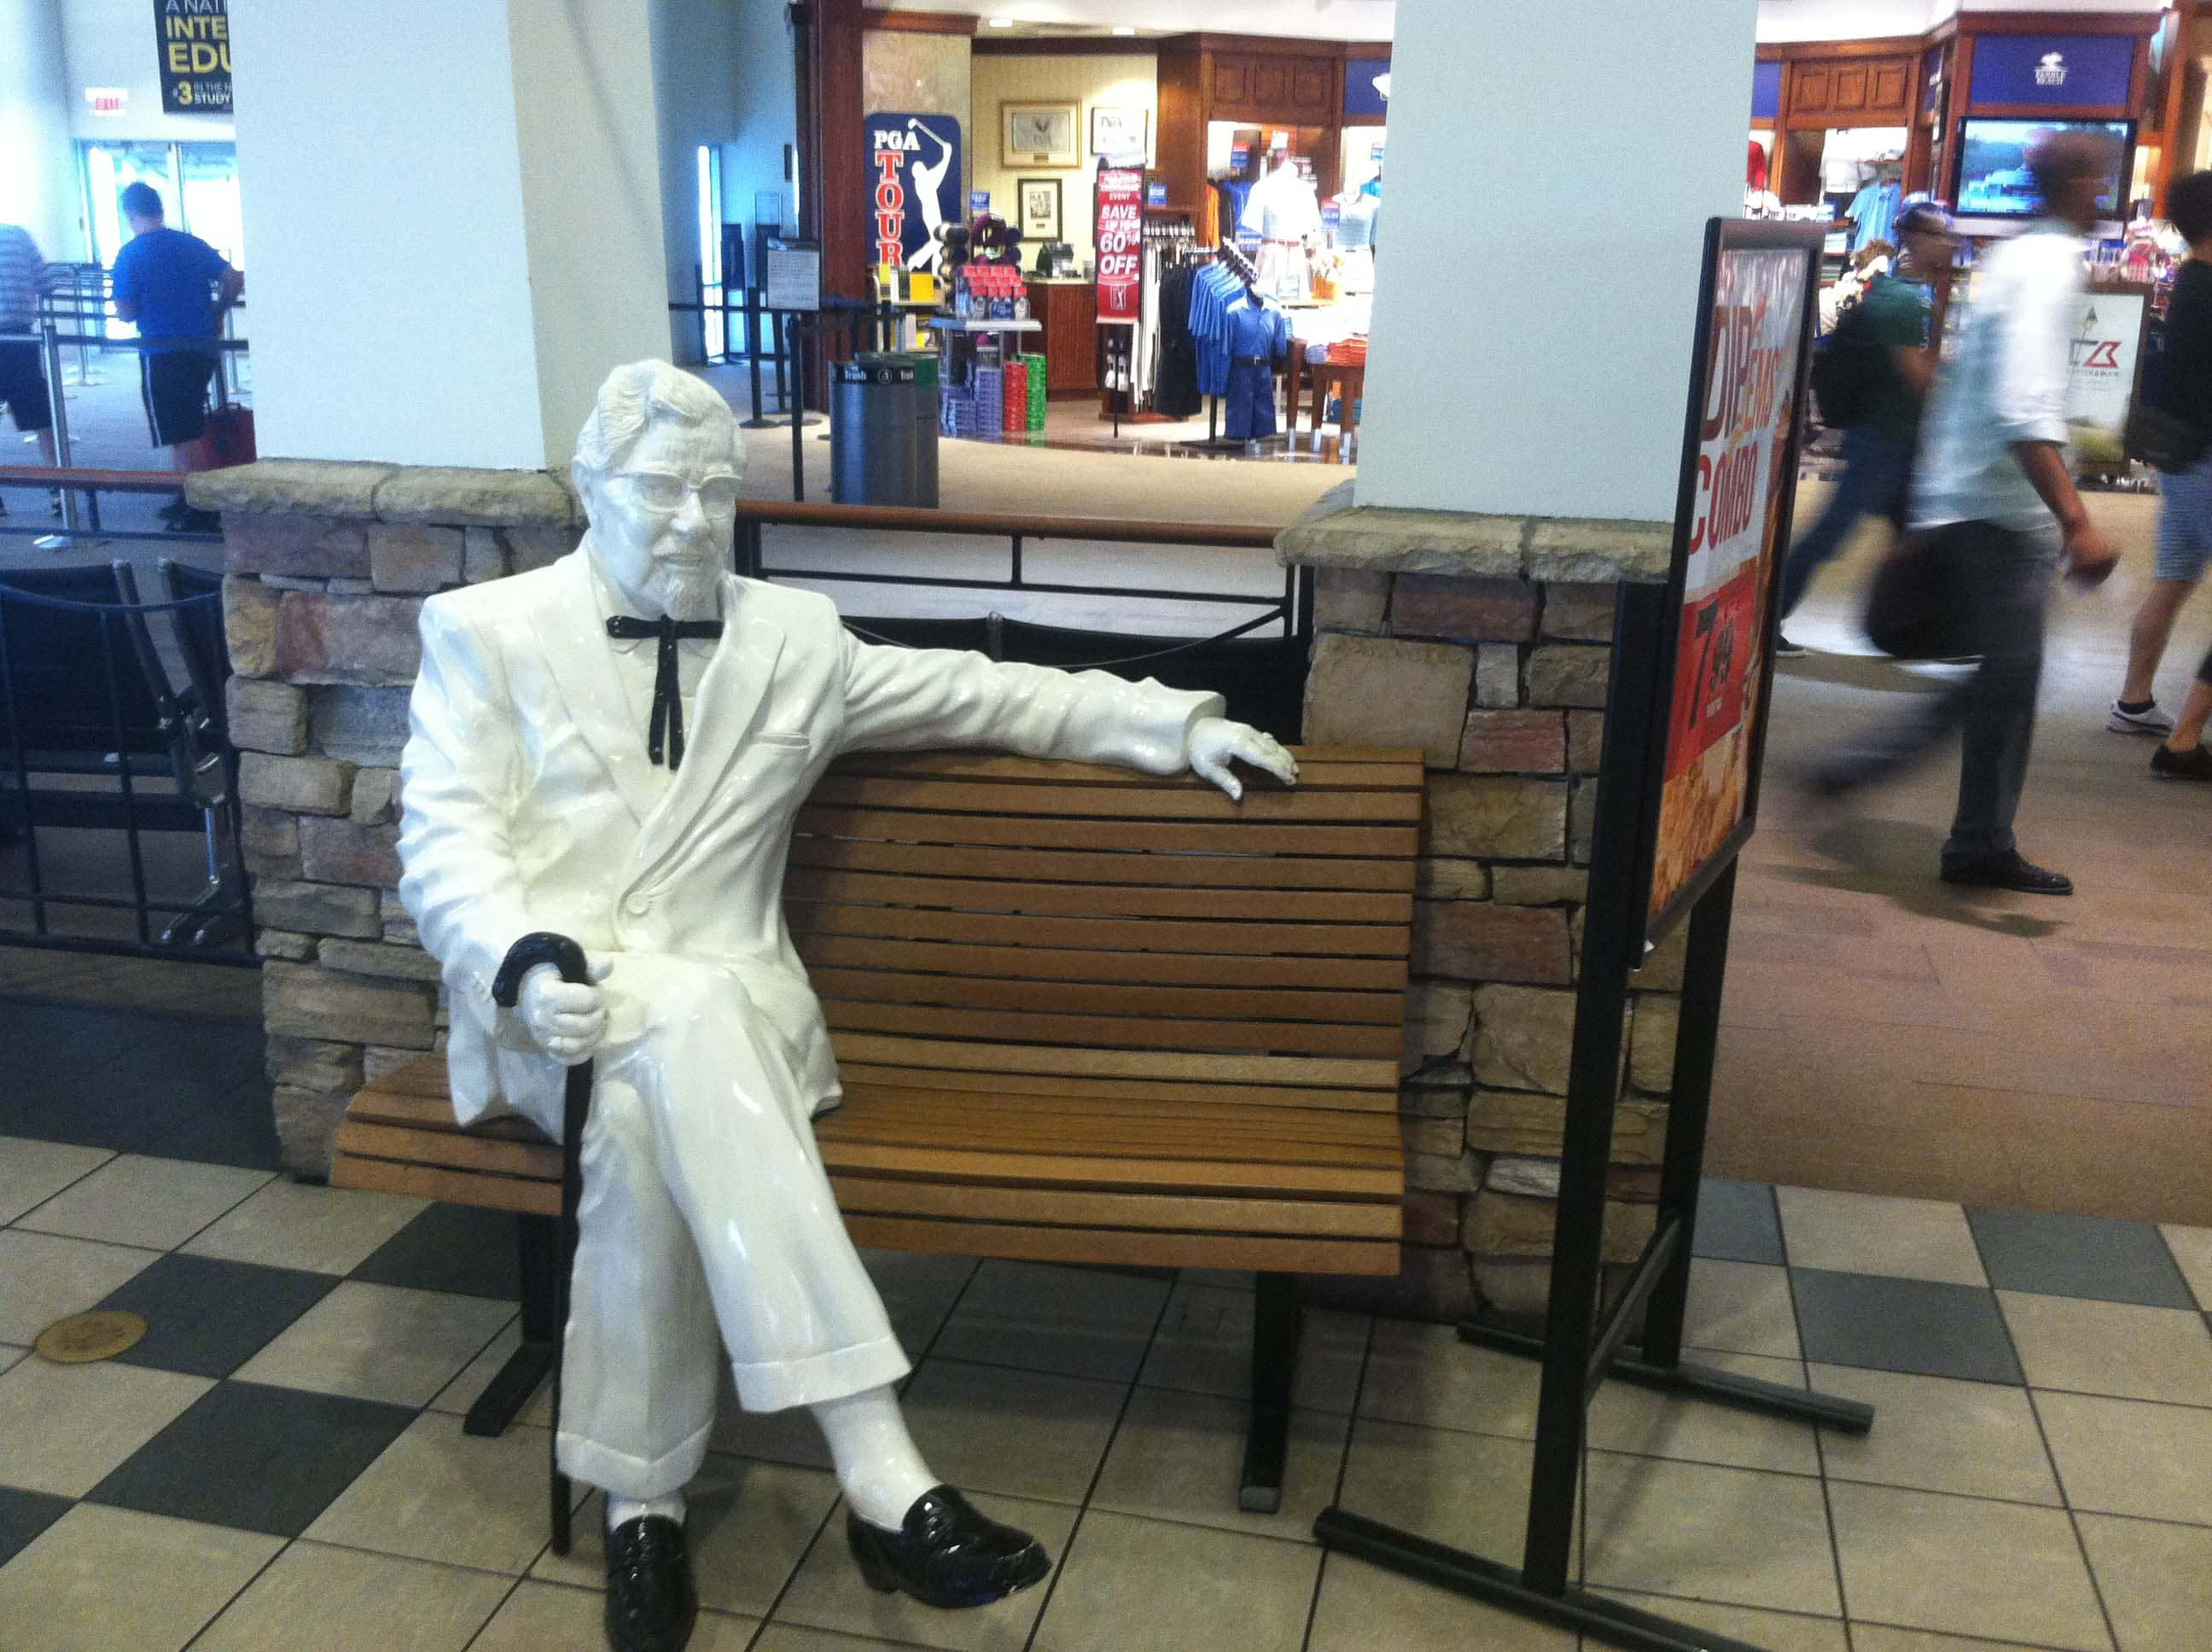 Colonel Sanders ... or